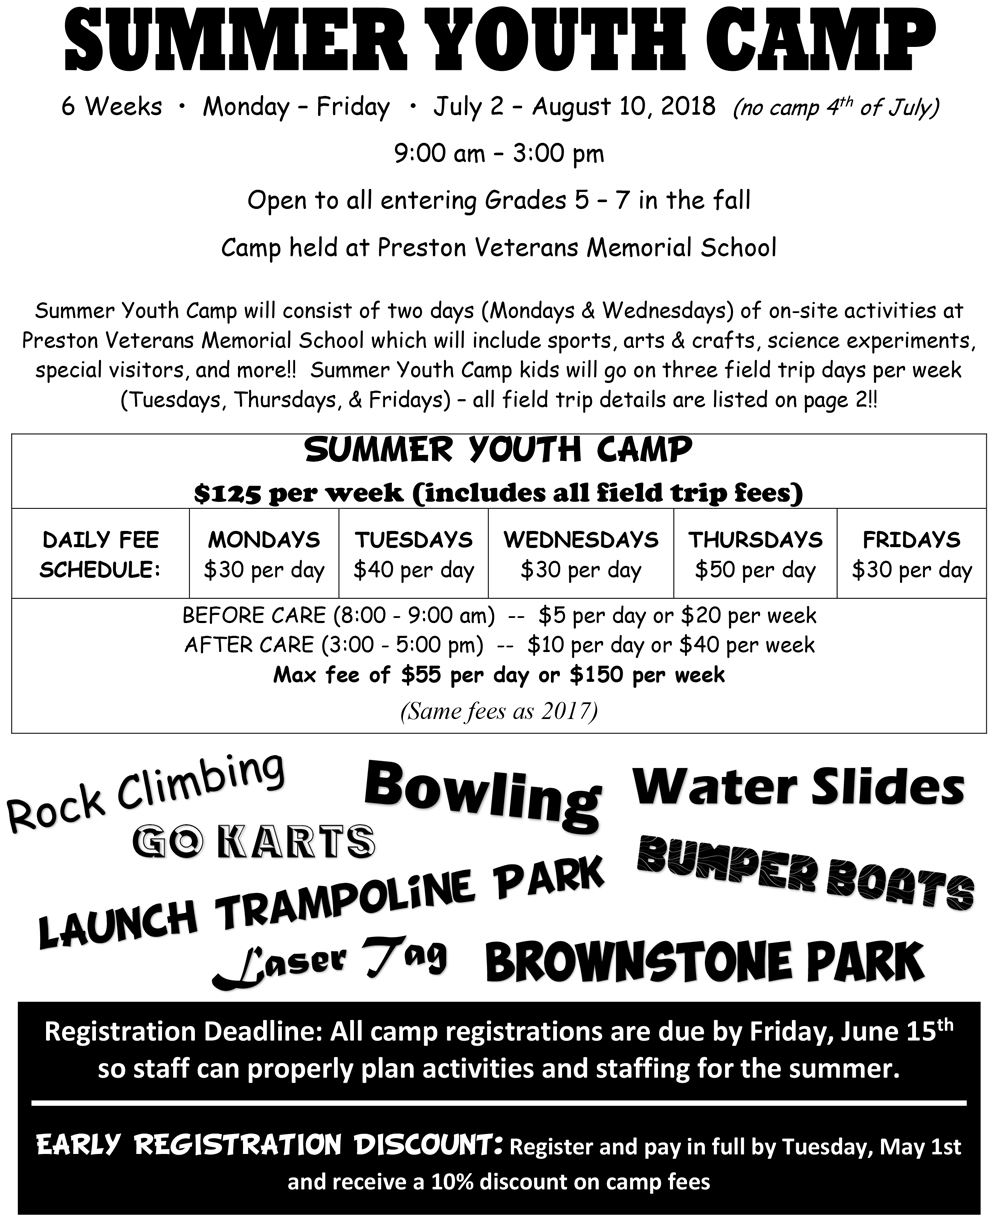 SummerYouthCampFlyer2018-1